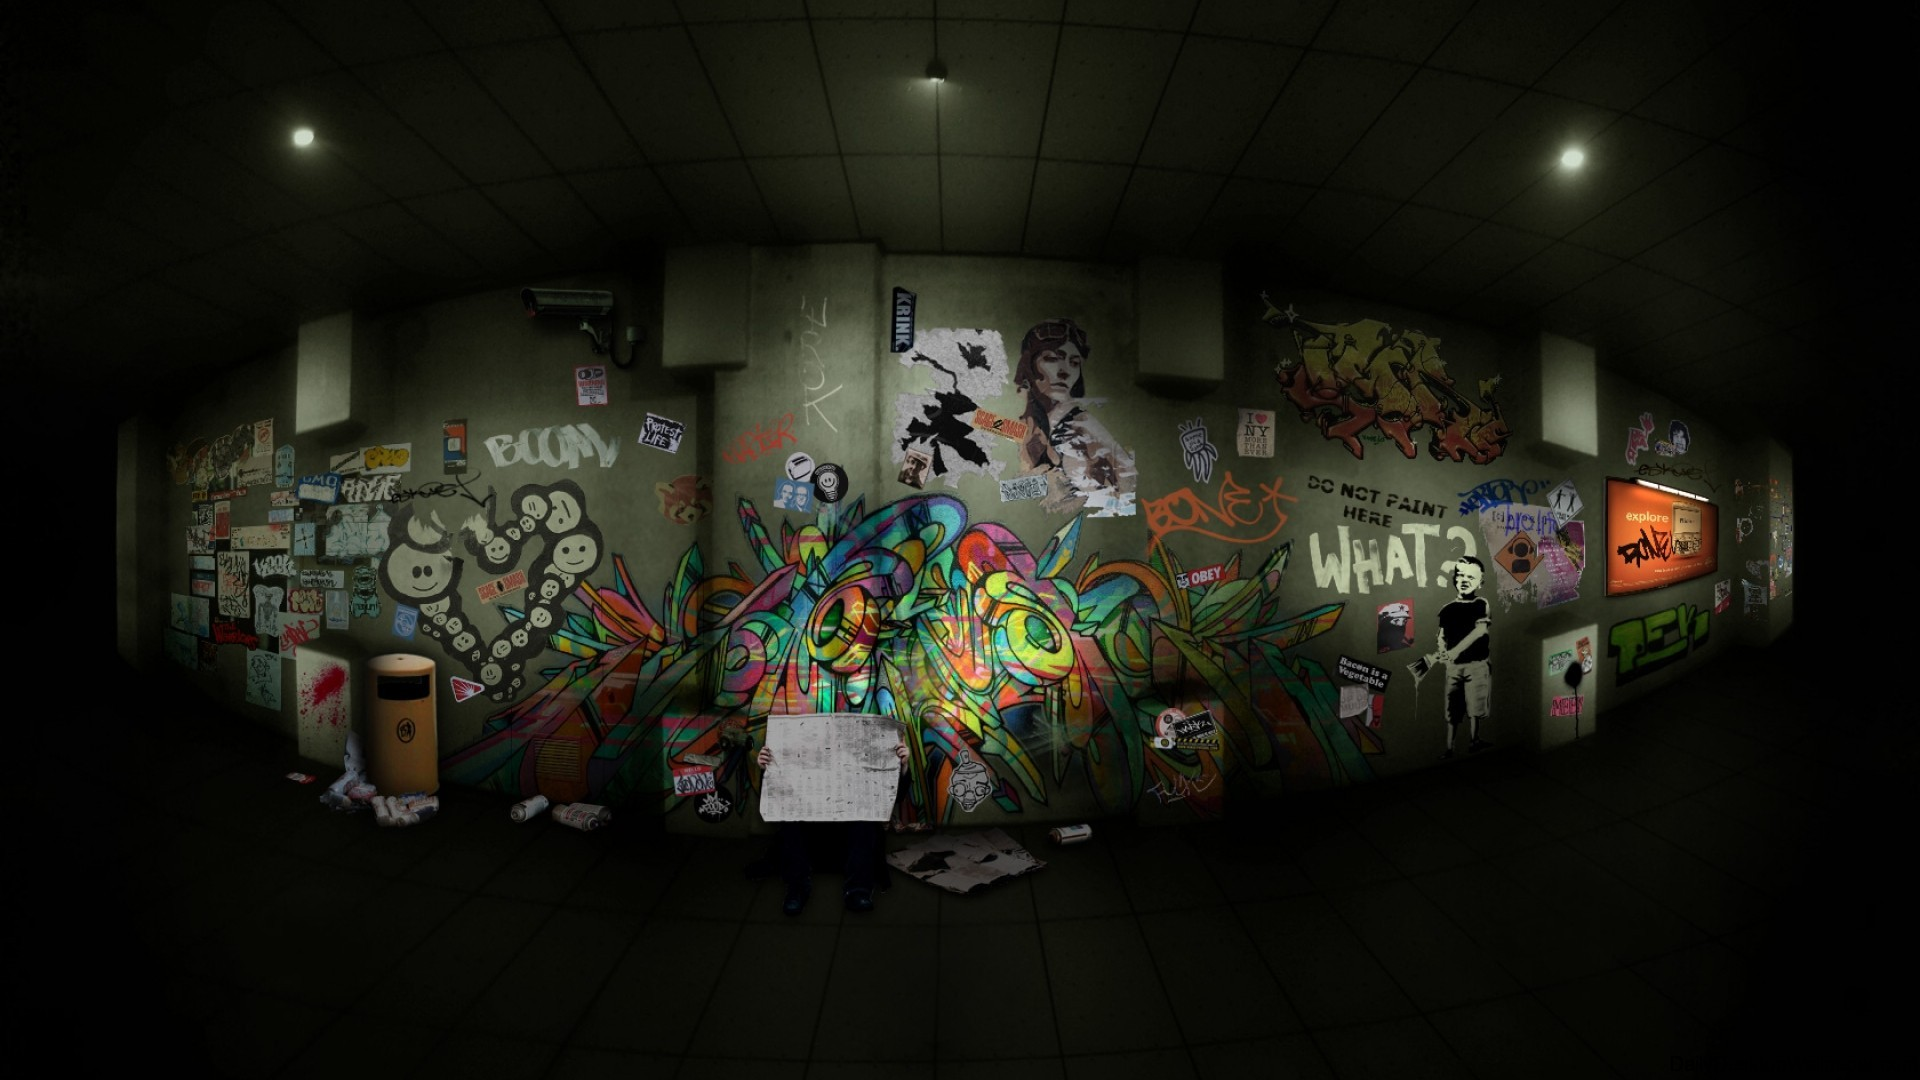 Graffiti wall 1920x1080